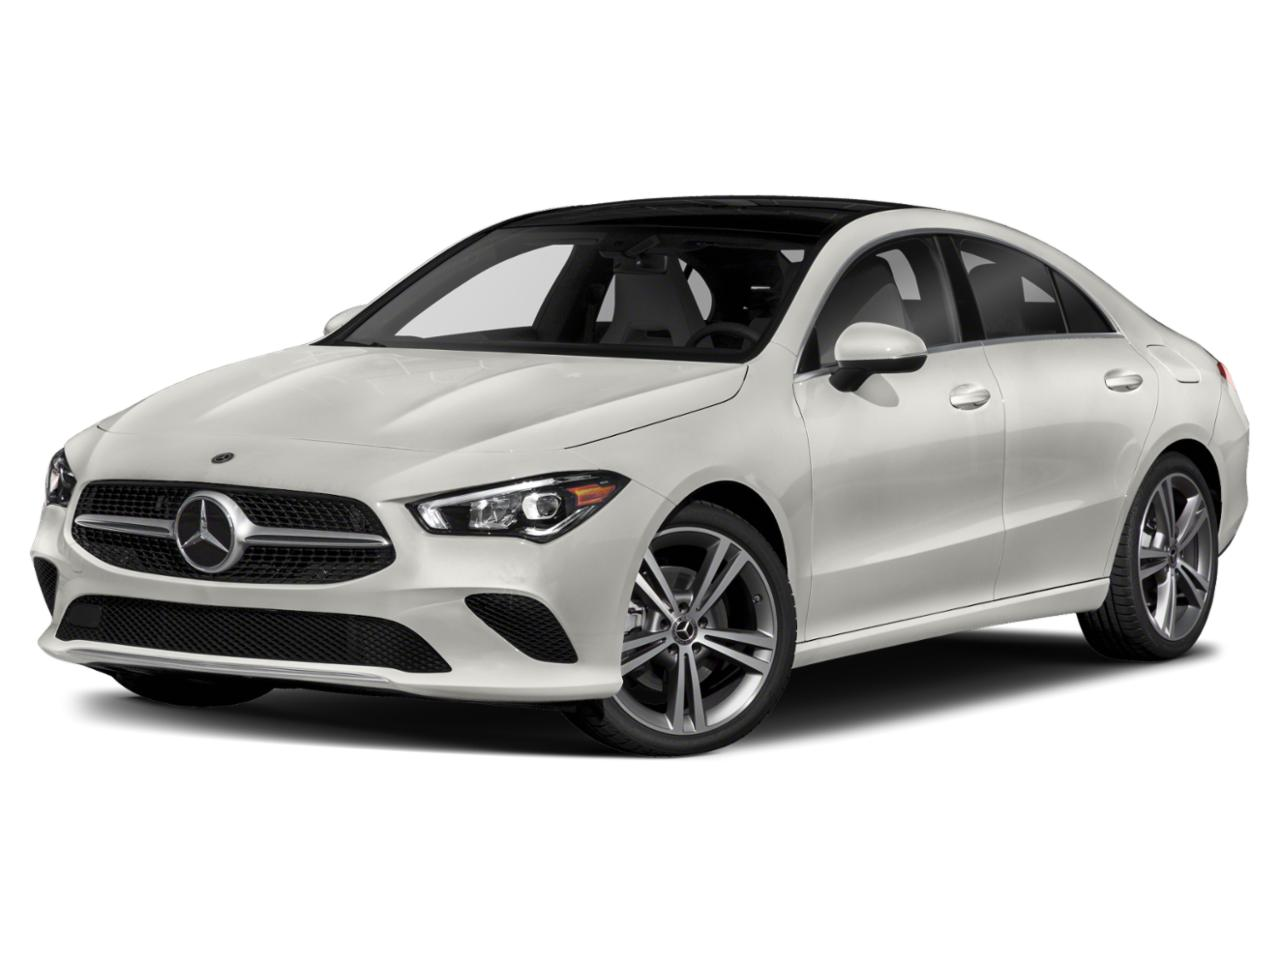 2020 Mercedes-Benz CLA Vehicle Photo in Grapevine, TX 76051